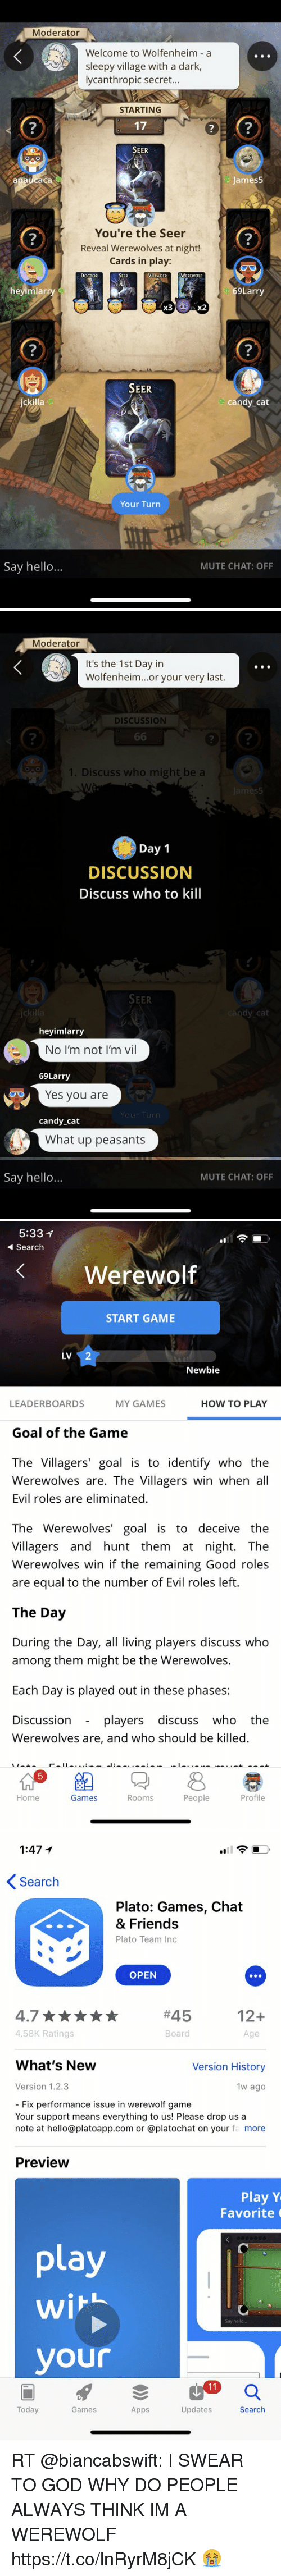 Candy, God, and Hello: Moderator  Welcome to Wolfenheim a  sleepy village with a dark,  lycanthropic secret.  STARTING  17  SEER  2  7  2  James5  You're the Seer  Reveal Werewolves at night!  Cards in play:  2  7  围围觇戛  SEER  LERWEREWOLE  heyimlar  9Larry  x3  2  2  SEER  ckilla  candy cat  Your Turn  Say hello...  MUTE CHAT: OFF   Moderator  It's the 1st Day in  Wolfenheim...or your very last.  DISCUSSION  2  2  2  1. Discuss who might be a  Day 1  DISCUSSION  Discuss who to kill  SEER  ckilla  dy cat  heyimlarry  No I'm not I'm vil  69Larry  Yes you are  candy cat  What up peasants  Say hello..  MUTE CHAT: OFF   5:33 1  Search  Werewolf  START GAME  LV2  Newbie  LEADERBOARDS  MY GAMES  HOW TO PLAY  Goal of the Game  The Villagers' goal is to identify who the  Werewolvesare. The Villagers win when all  Evil roles are eliminated  The Werewolves' goal is to deceive the  Villagers and hunt them at night. The  Werewolves win if the remaining Good roles  are equal to the number of Evil roles left.  The Day  During the Day, all living players discuss who  among them might be the Werewolves.  Each Day is played out in these phases:  Discussion  - plavers discuss who the  Werewolves are, and who should be killed  Home  Games  Rooms  People  Profile   1:47 1  Search  Plato: Games, Chat  & Friend:s  Plato Team Inc  OPEN  #45  12+  4.58K Ratings  Board  Age  What's New  Version History  Version 1.2.3  1w ago  - Fix performance issue in werewolf game  Your support means everything to us! Please drop us a  note at hello@platoapp.com or @platochat on your fa more  Preview  Play Y  Favorite  La  Say hello..  your  Today  Games  Apps  Updates  Search RT @biancabswift: I SWEAR TO GOD WHY DO PEOPLE ALWAYS THINK IM A WEREWOLF https://t.co/lnRyrM8jCK 😭